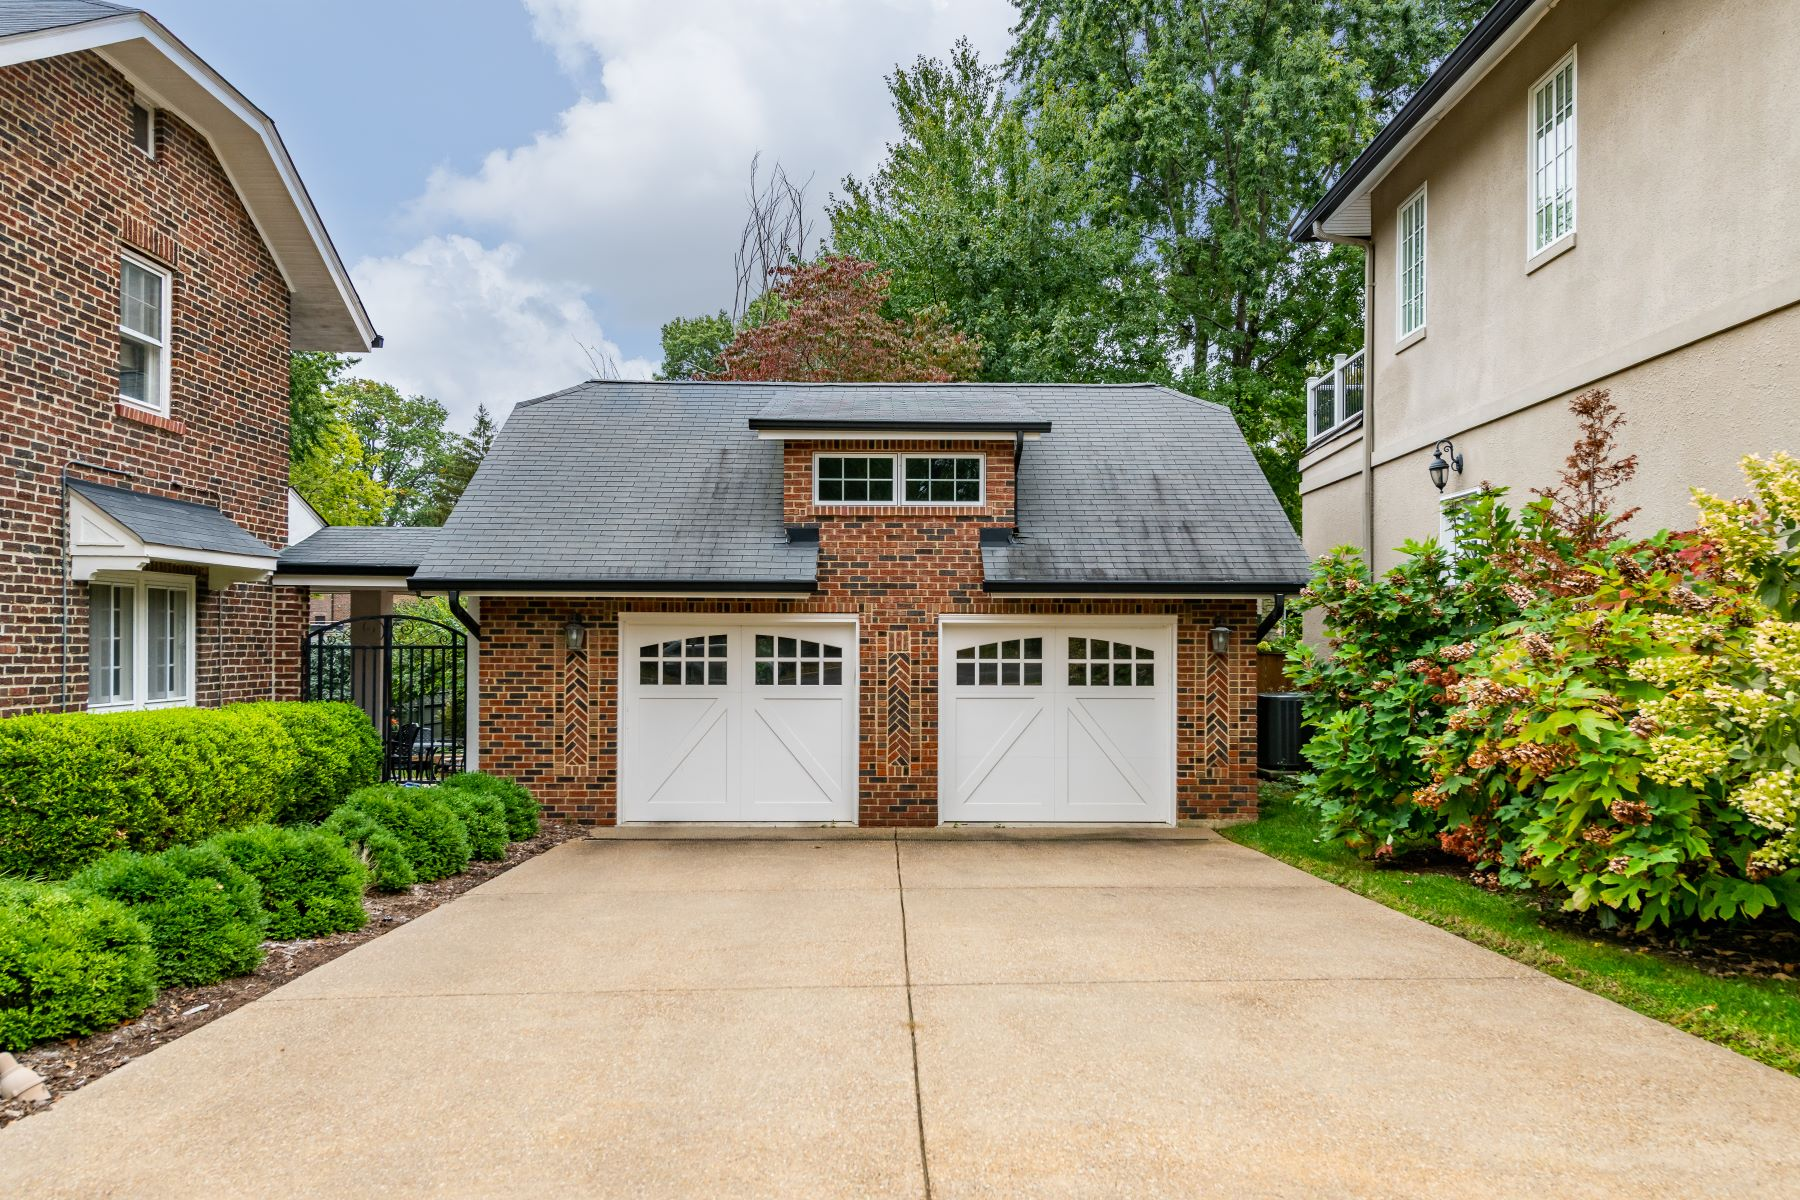 Additional photo for property listing at Architectural Gem in Maryland Terrace 7288 Westmoreland Drive University City, Missouri 63130 United States